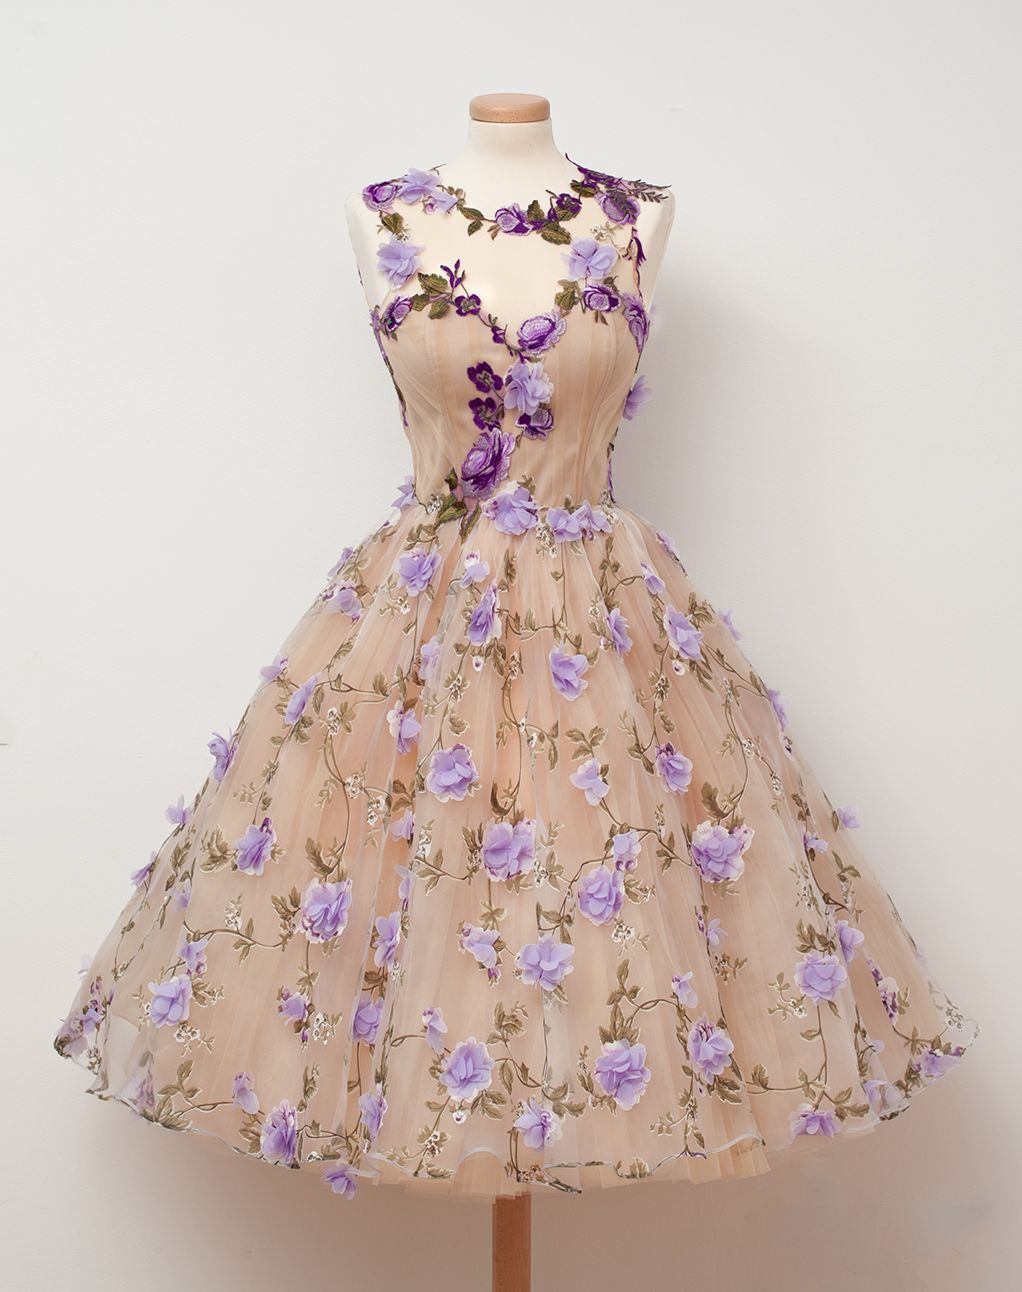 Vintage Fashion Fabulous 50s Inspired Cream Tulle Dress Adorned With Lavender Flo Champagne Homecoming Dresses Tulle Homecoming Dress Homecoming Dresses Short [ 1292 x 1022 Pixel ]